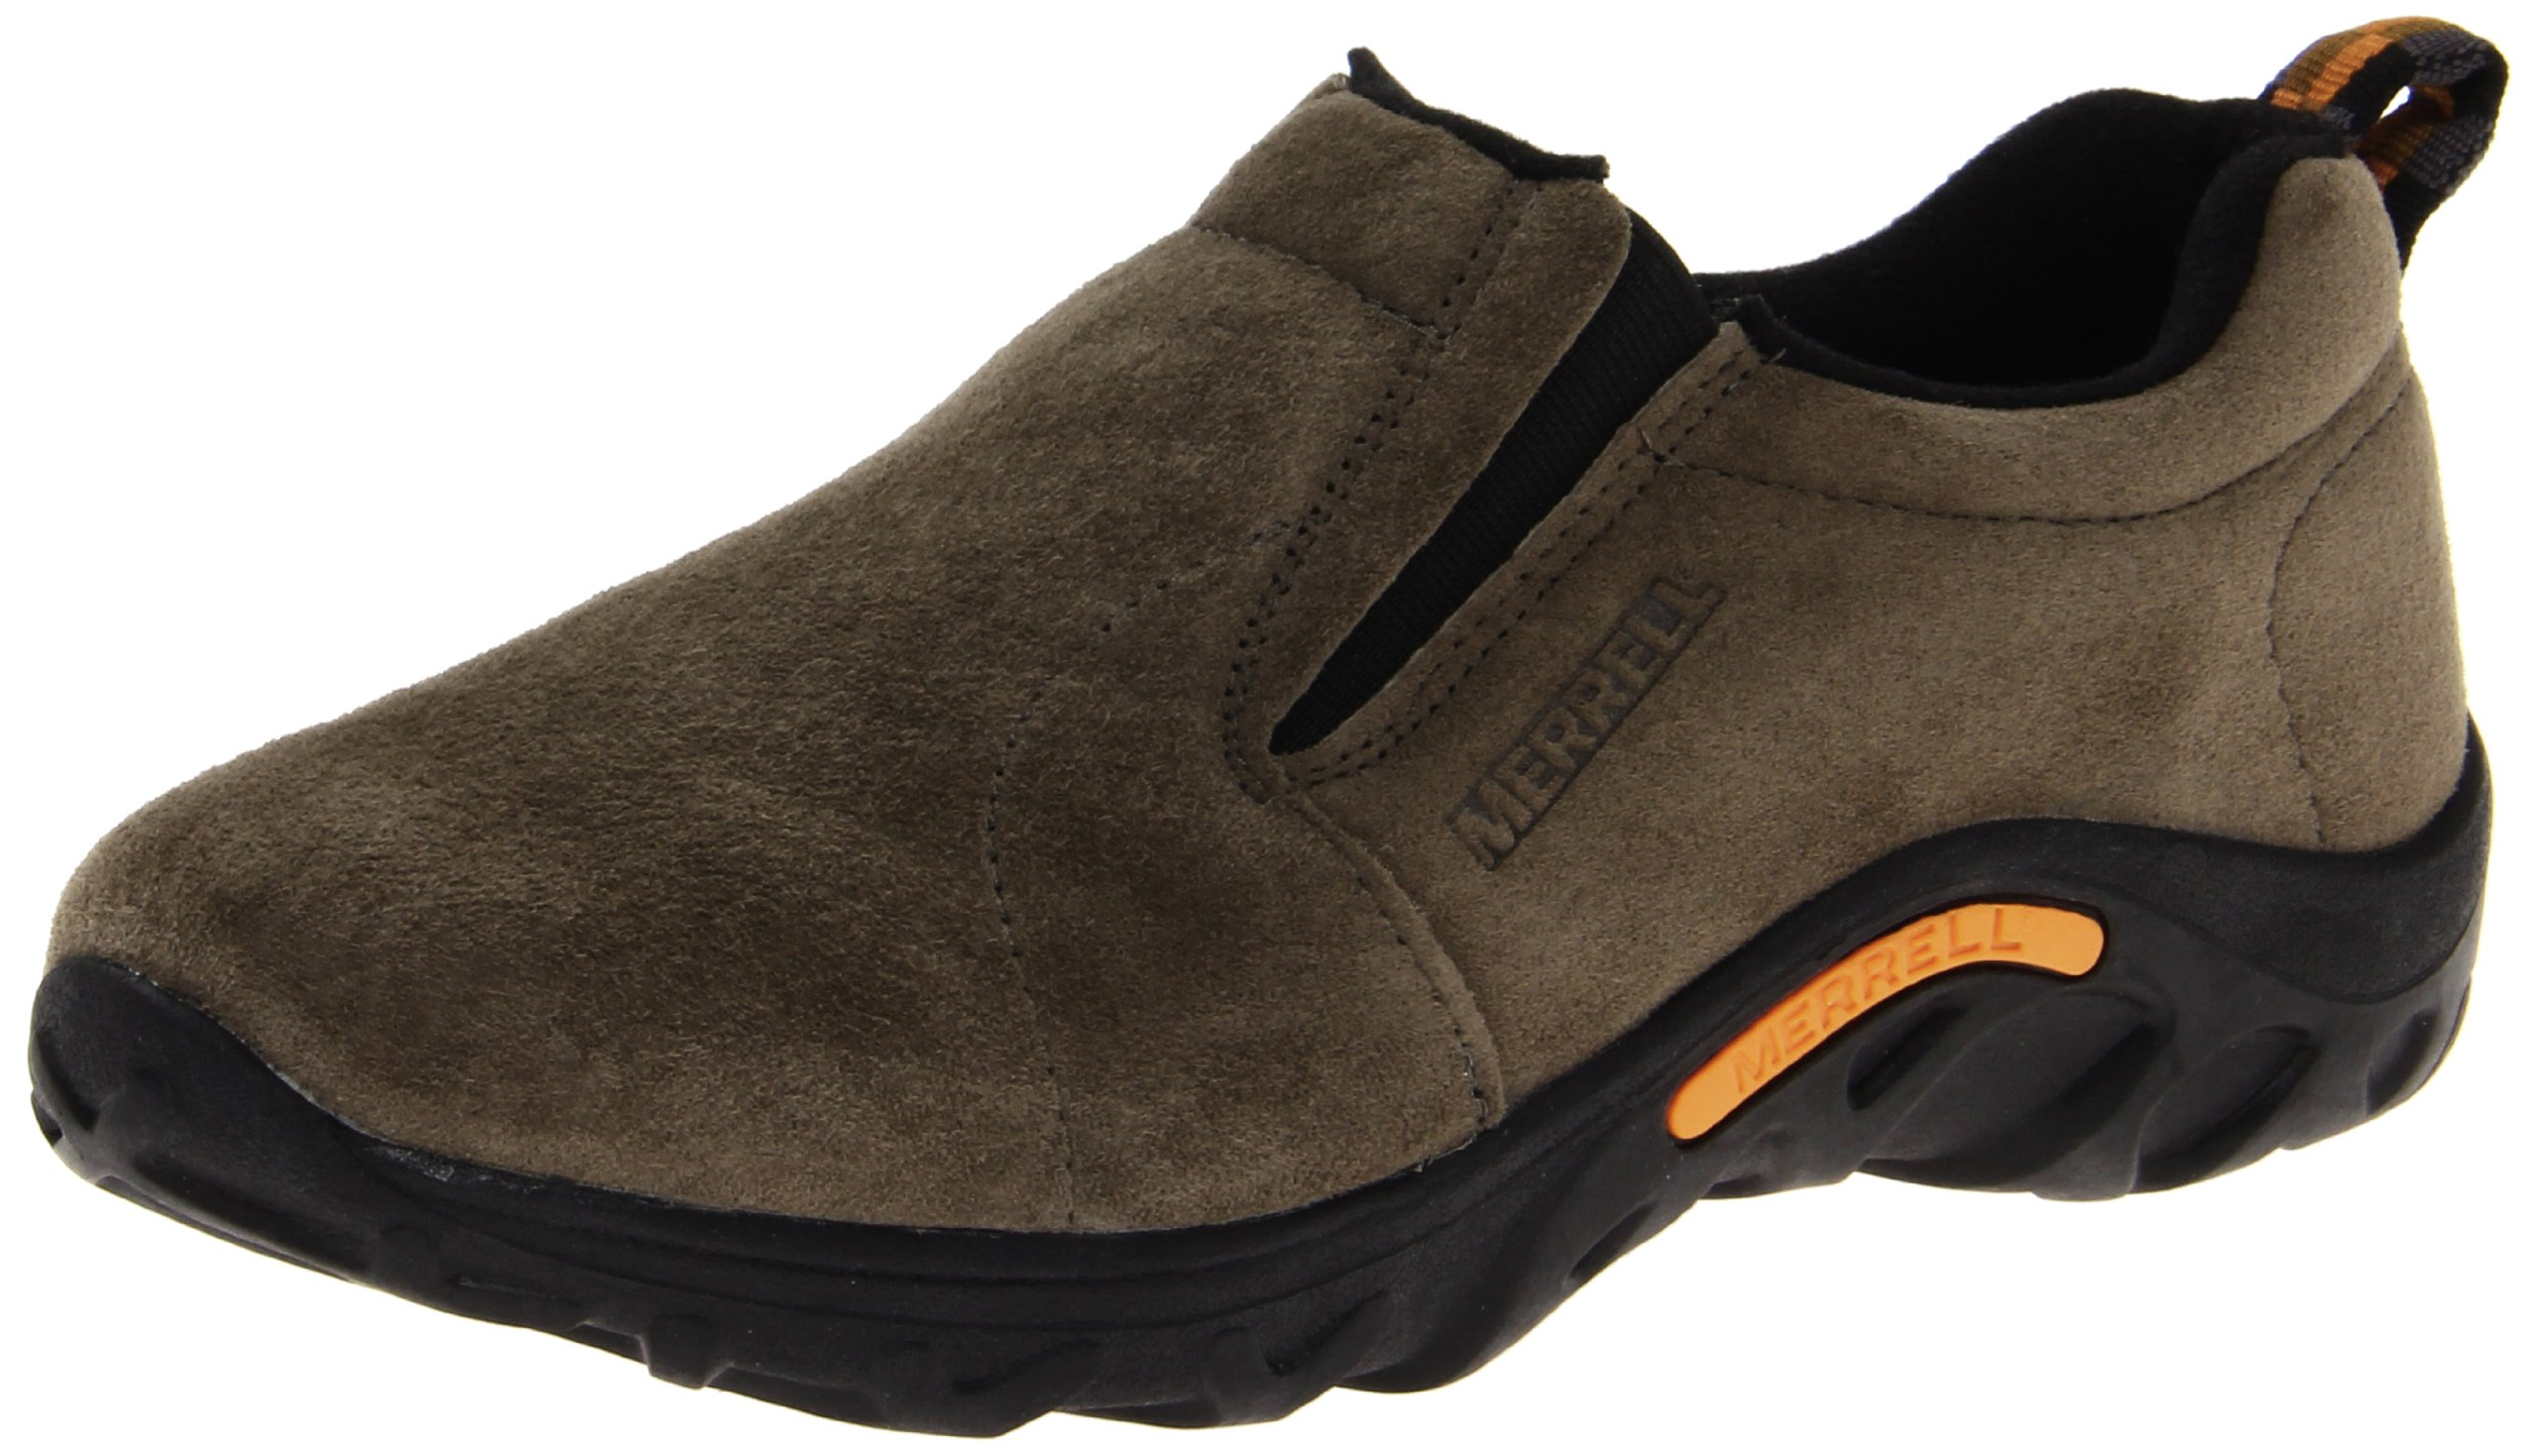 Merrell Jungle Moc (Toddler/Little Kid/Big Kid),Gunsmoke,11.5 W US Little Kid